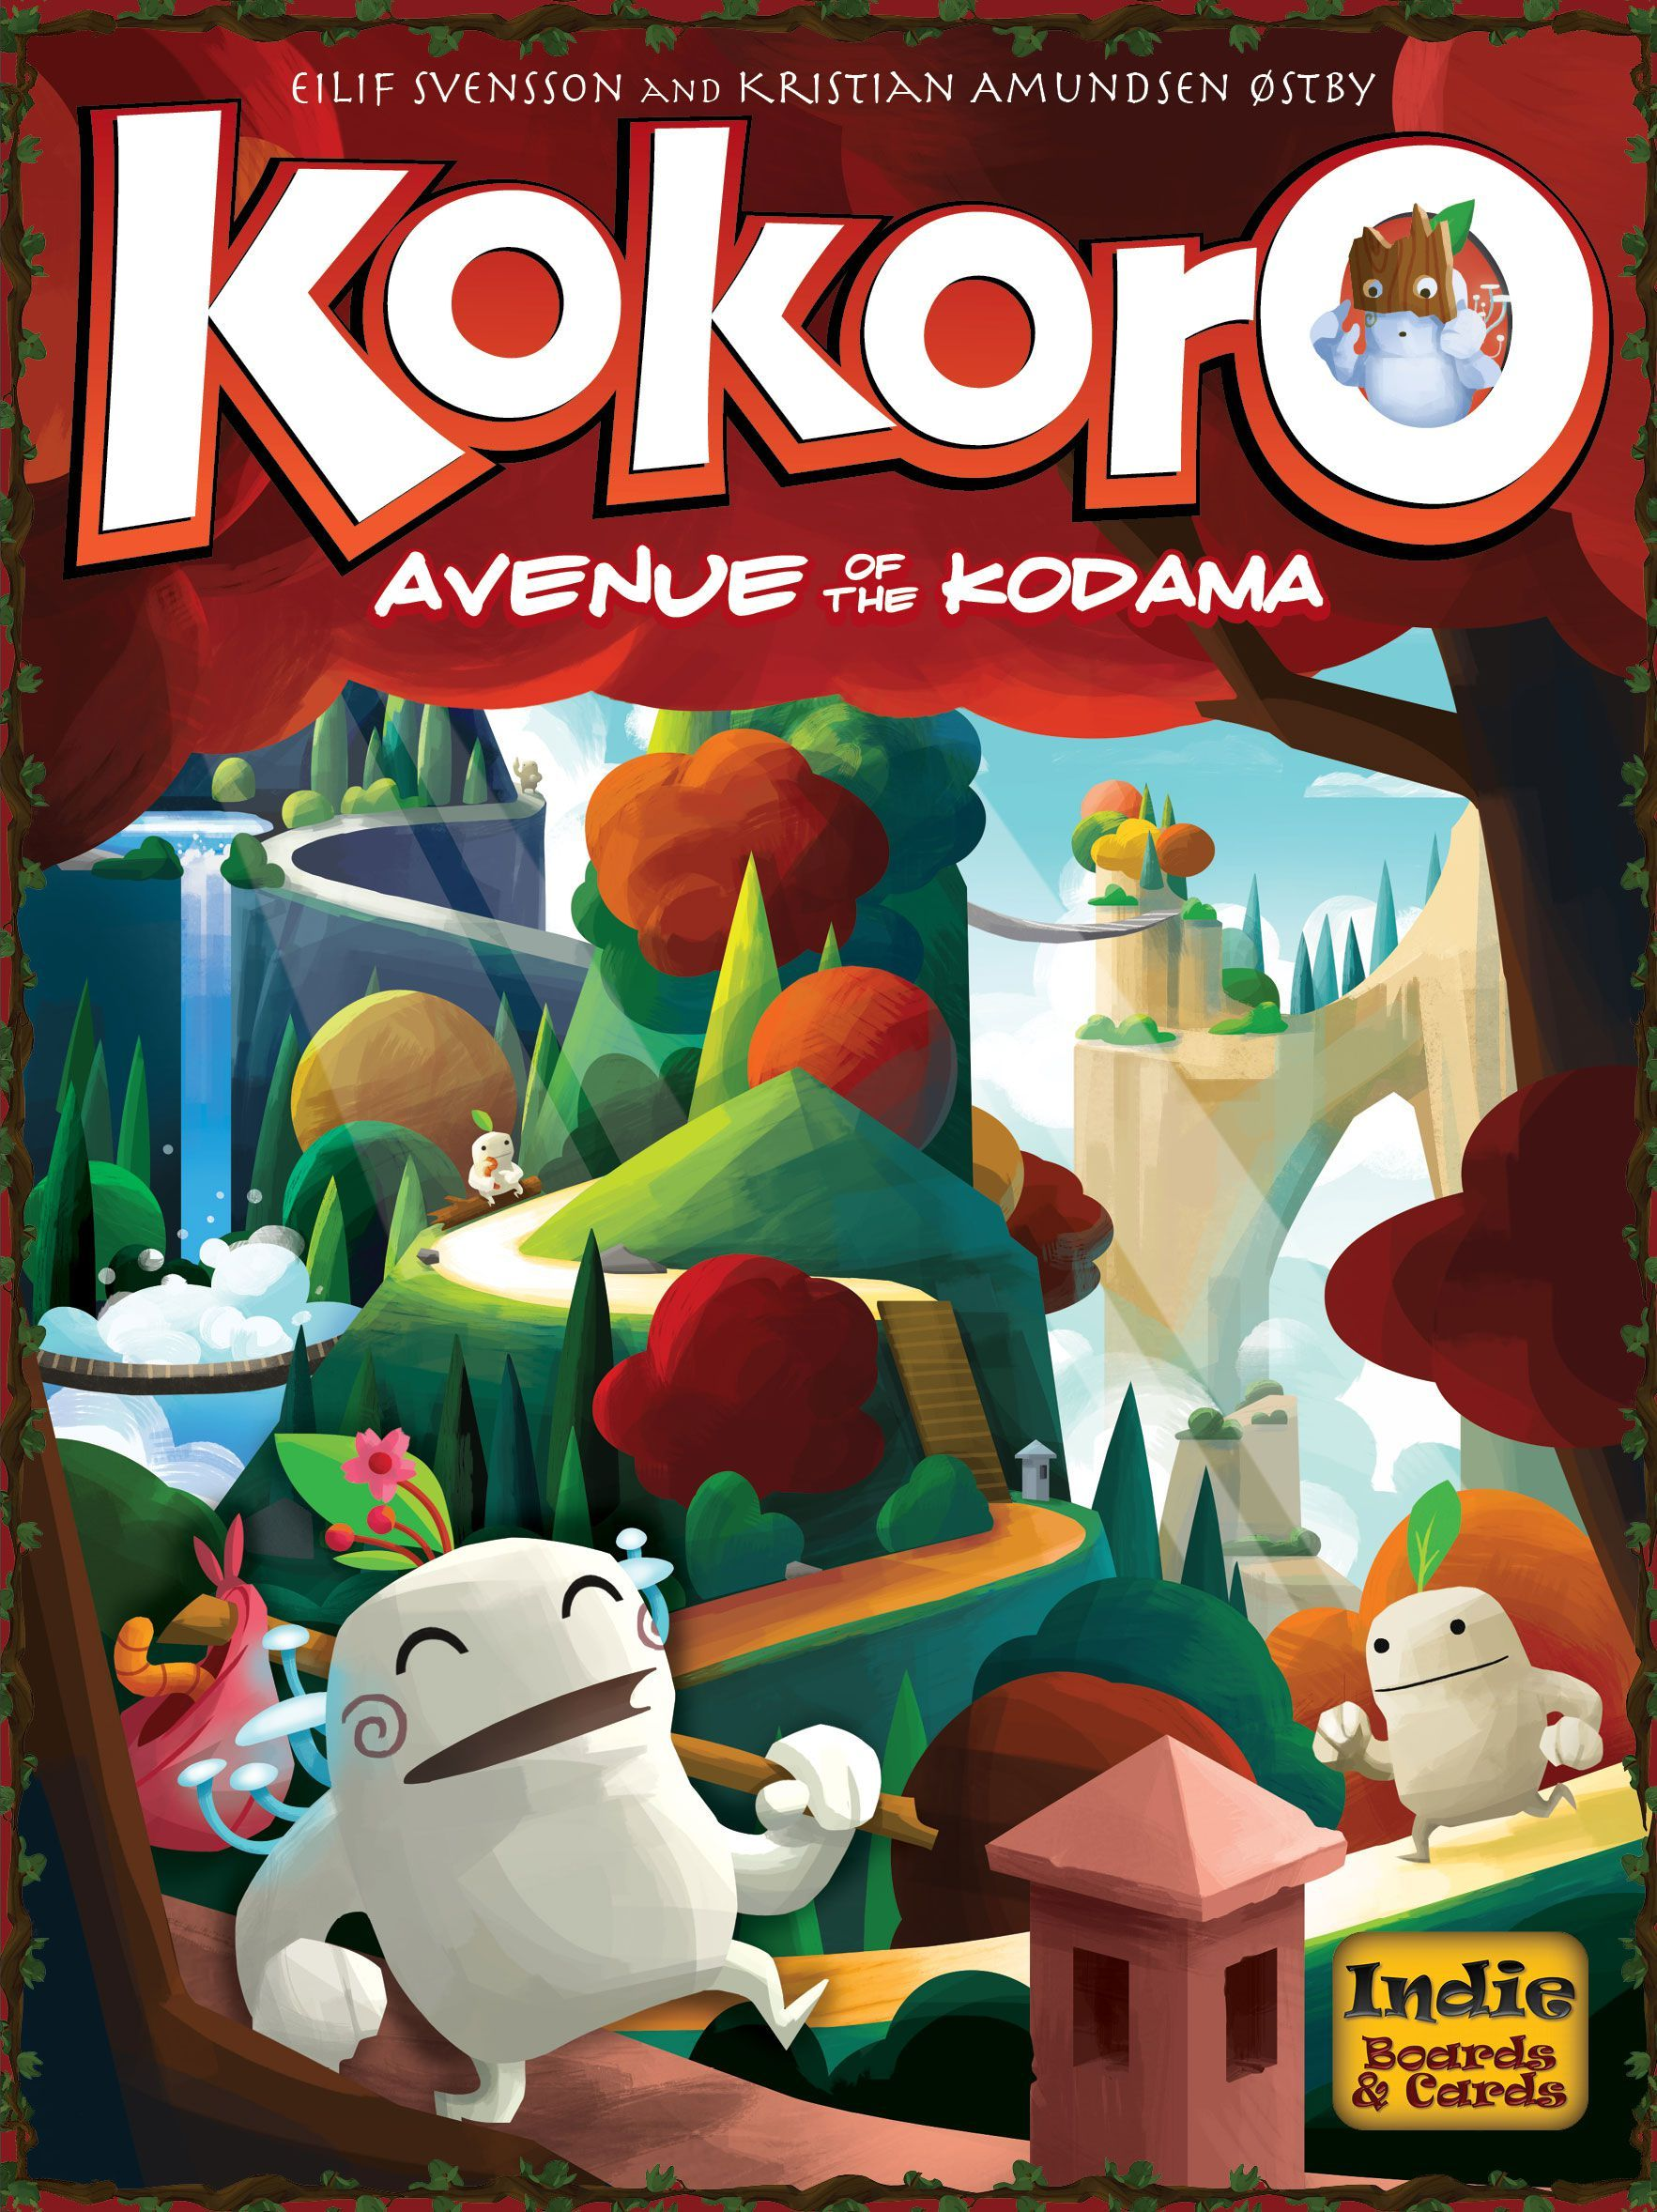 Main image for Kokoro: Avenue of the Kodama